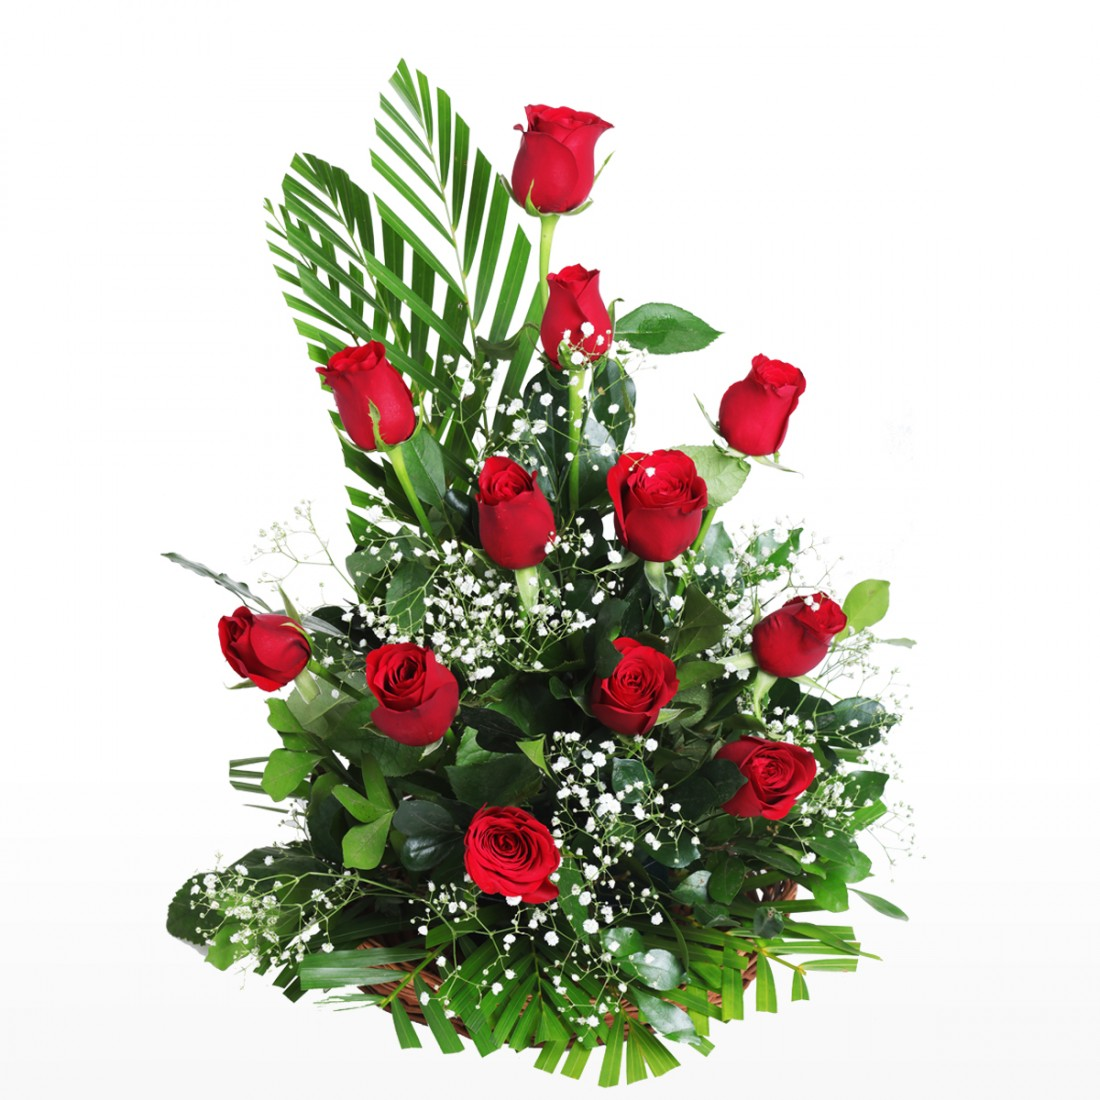 flower vases in hyderabad with 12 Roses Arranged In A Basket on Mix Flowers Bouquet With Plum Cake And Christmas Card as well Kq Designer Dining Table 6 Seat Bench 4 Chair Set Time Together Product 2799 additionally Tips To Keep Your Home Dengue Free likewise Soft N Nutty furthermore Elegant Blooms Of Sunshine.